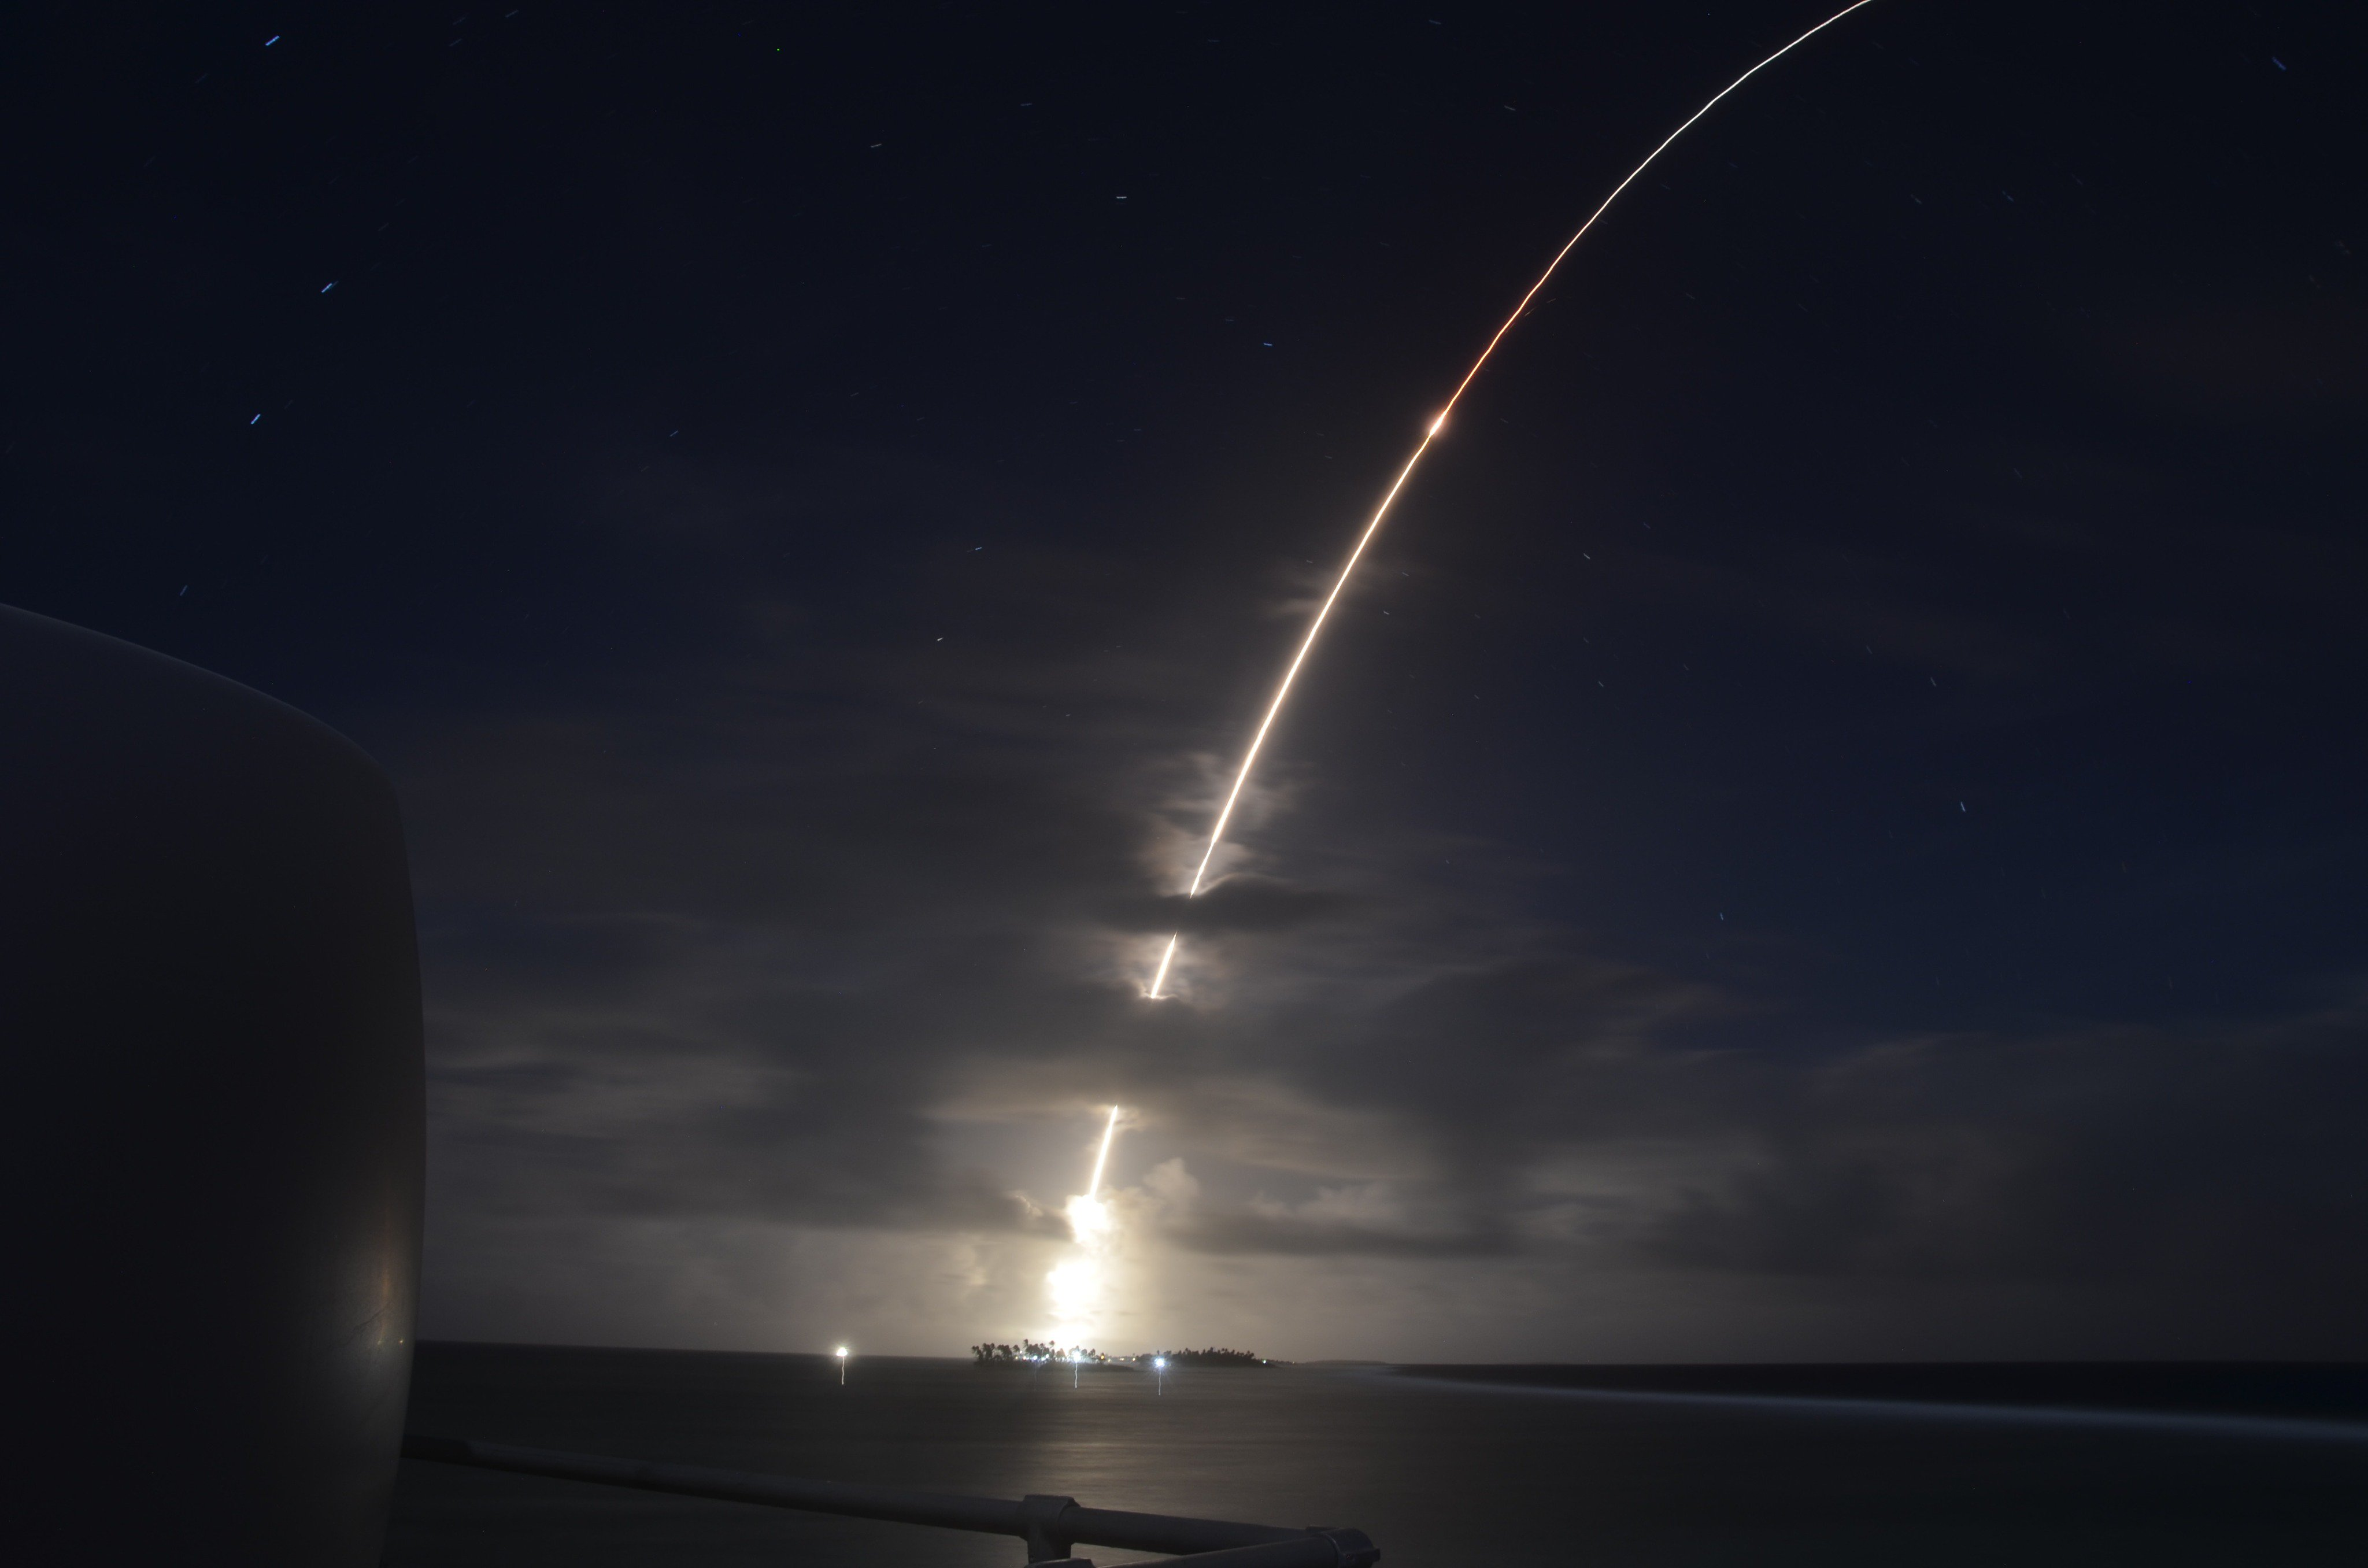 A threat-representative ICBM target launches from the Ronald Reagan Ballistic Missile Defense Test Site on Kwajalein Atoll in the Republic of the Marshall Islands March 25, 2019. It was successfully intercepted by two long-range Ground-based Interceptors launched from Vandenberg Air Force Base, Calif., in the first salvo test of GBIs.